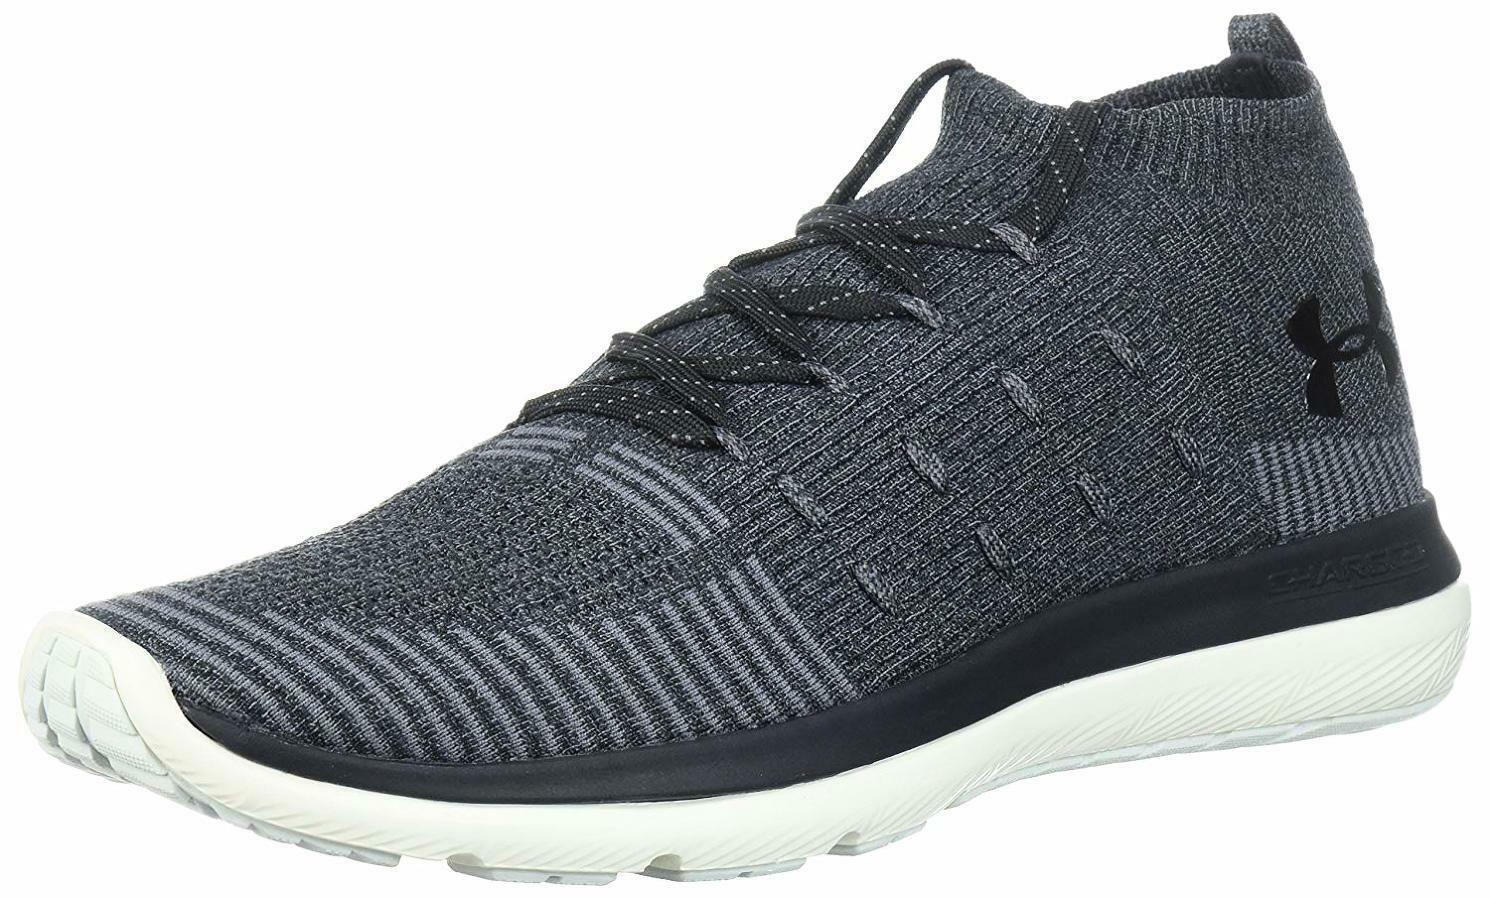 Under Armour Men's Slingflex Rise Sneaker - Choose SZ/Color